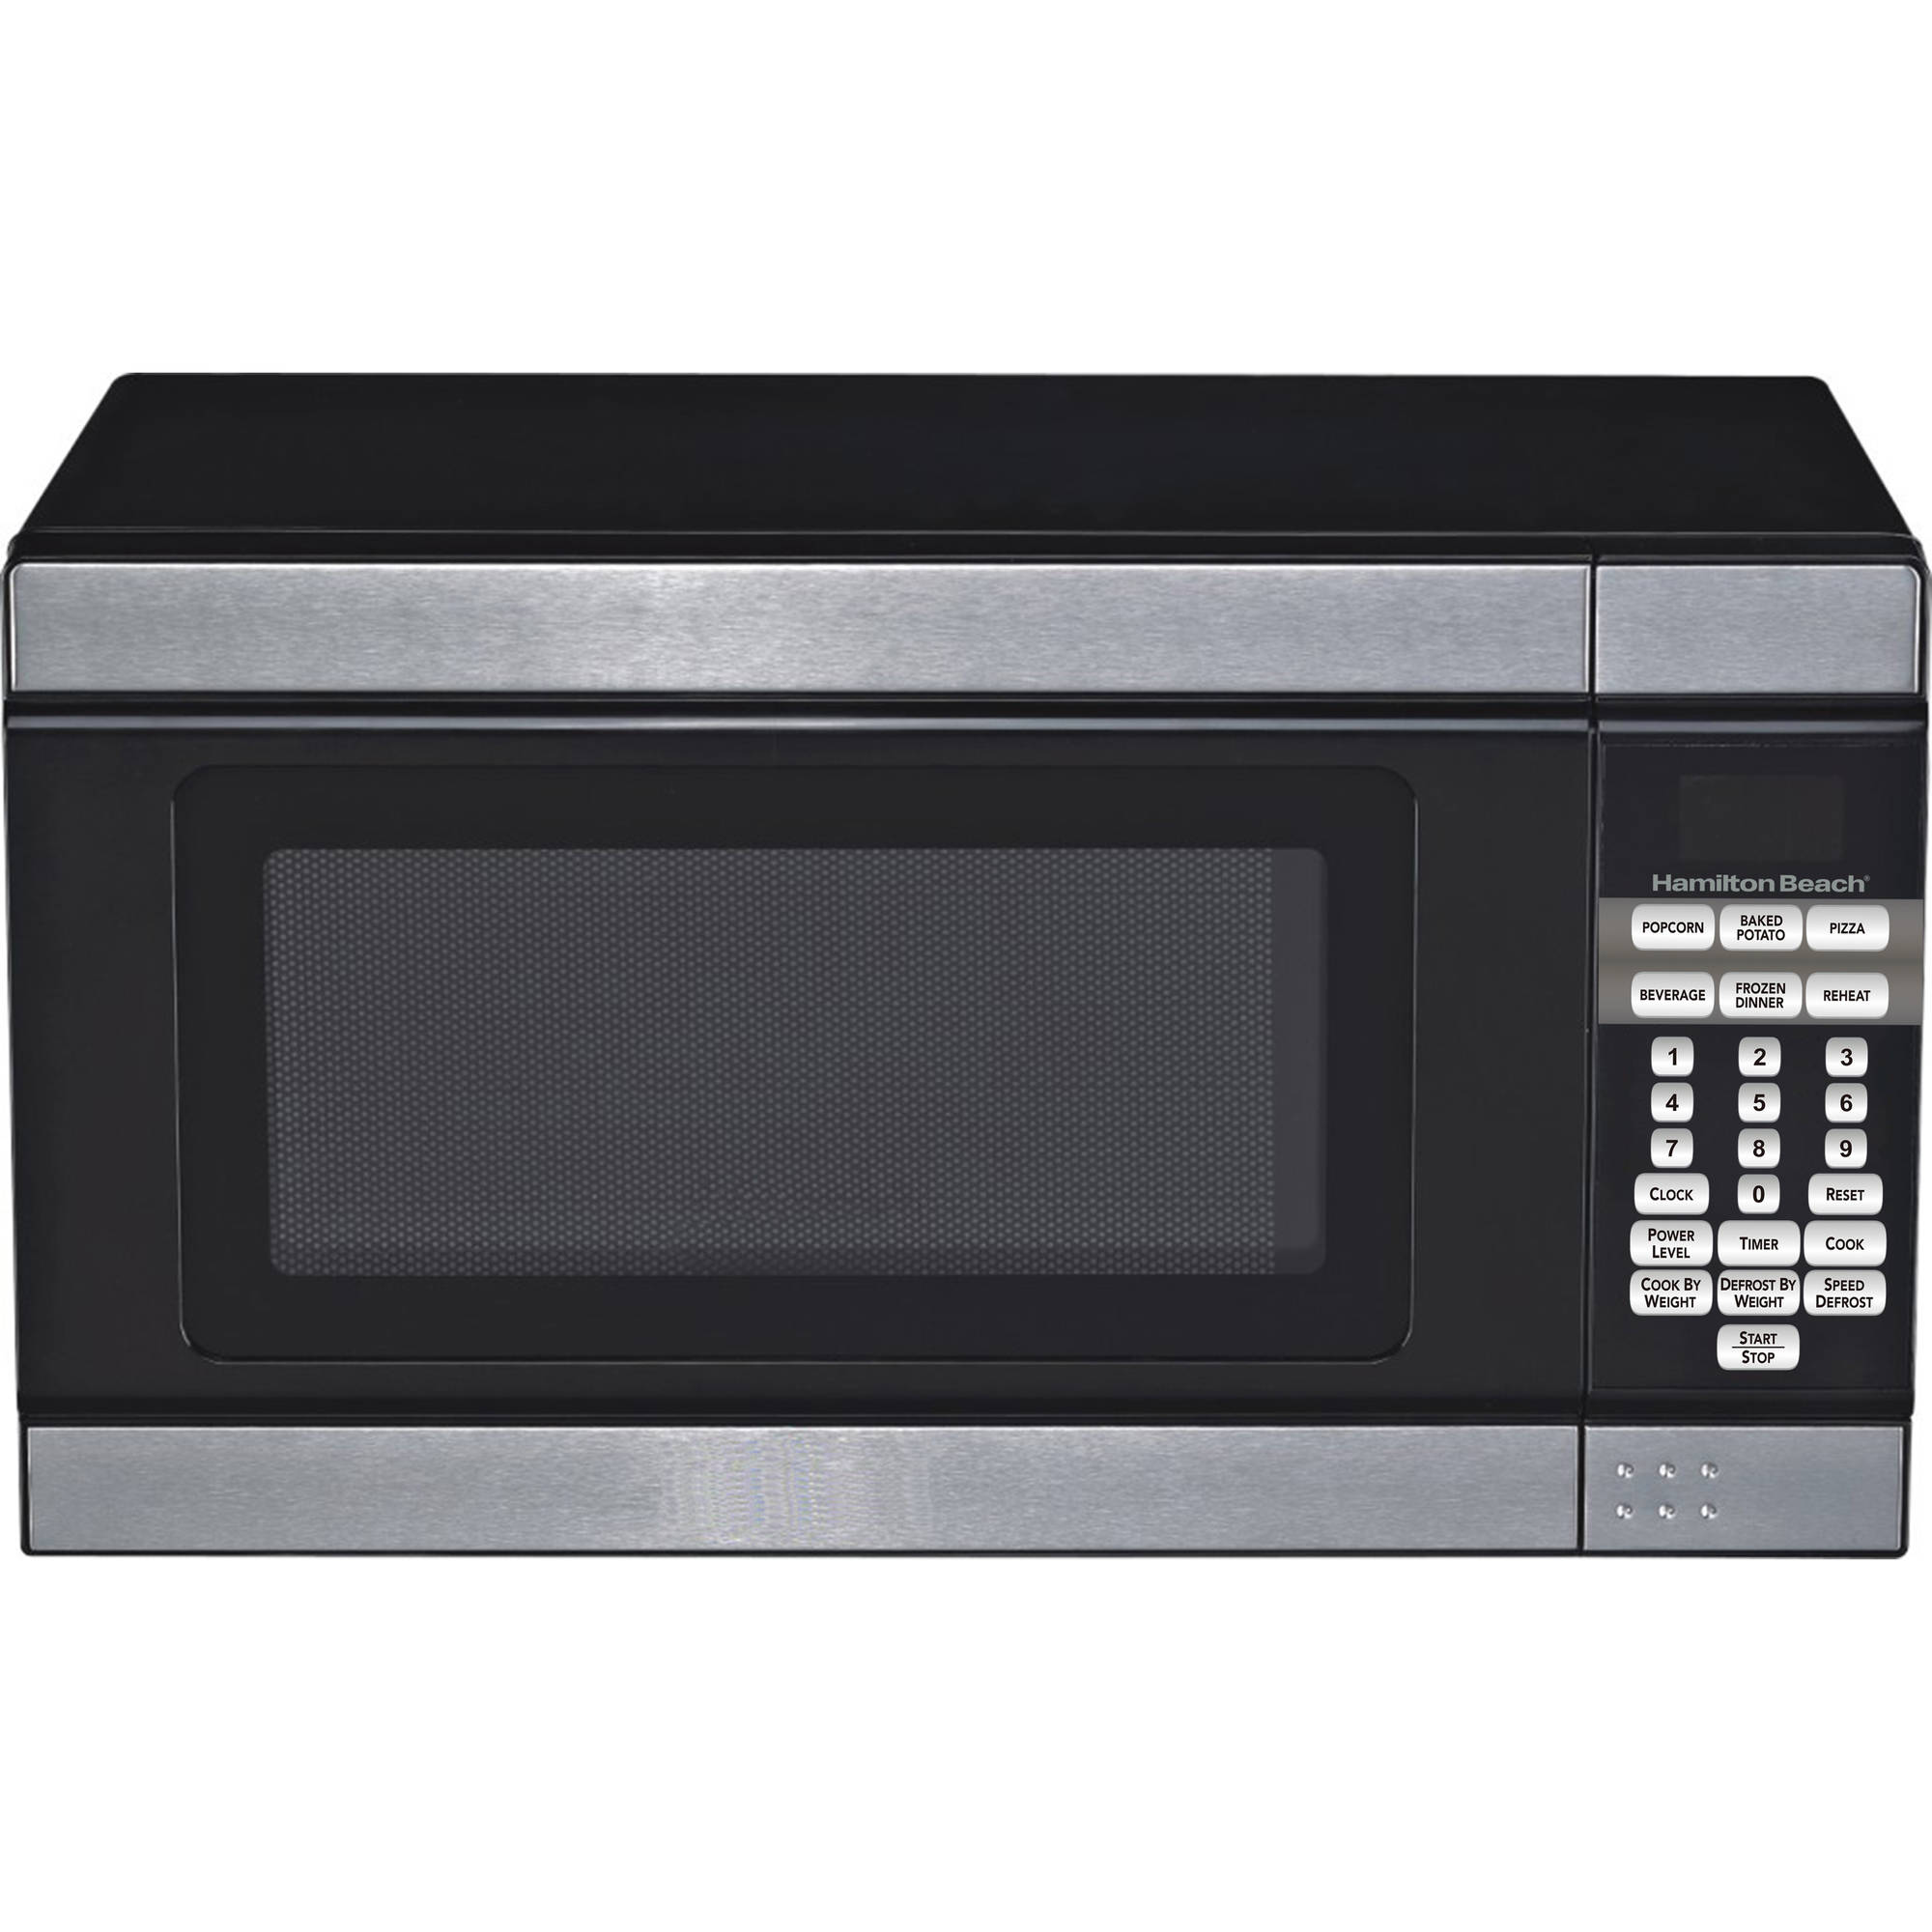 Hamilton Beach 0.7-cu. ft. Microwave Oven, Black